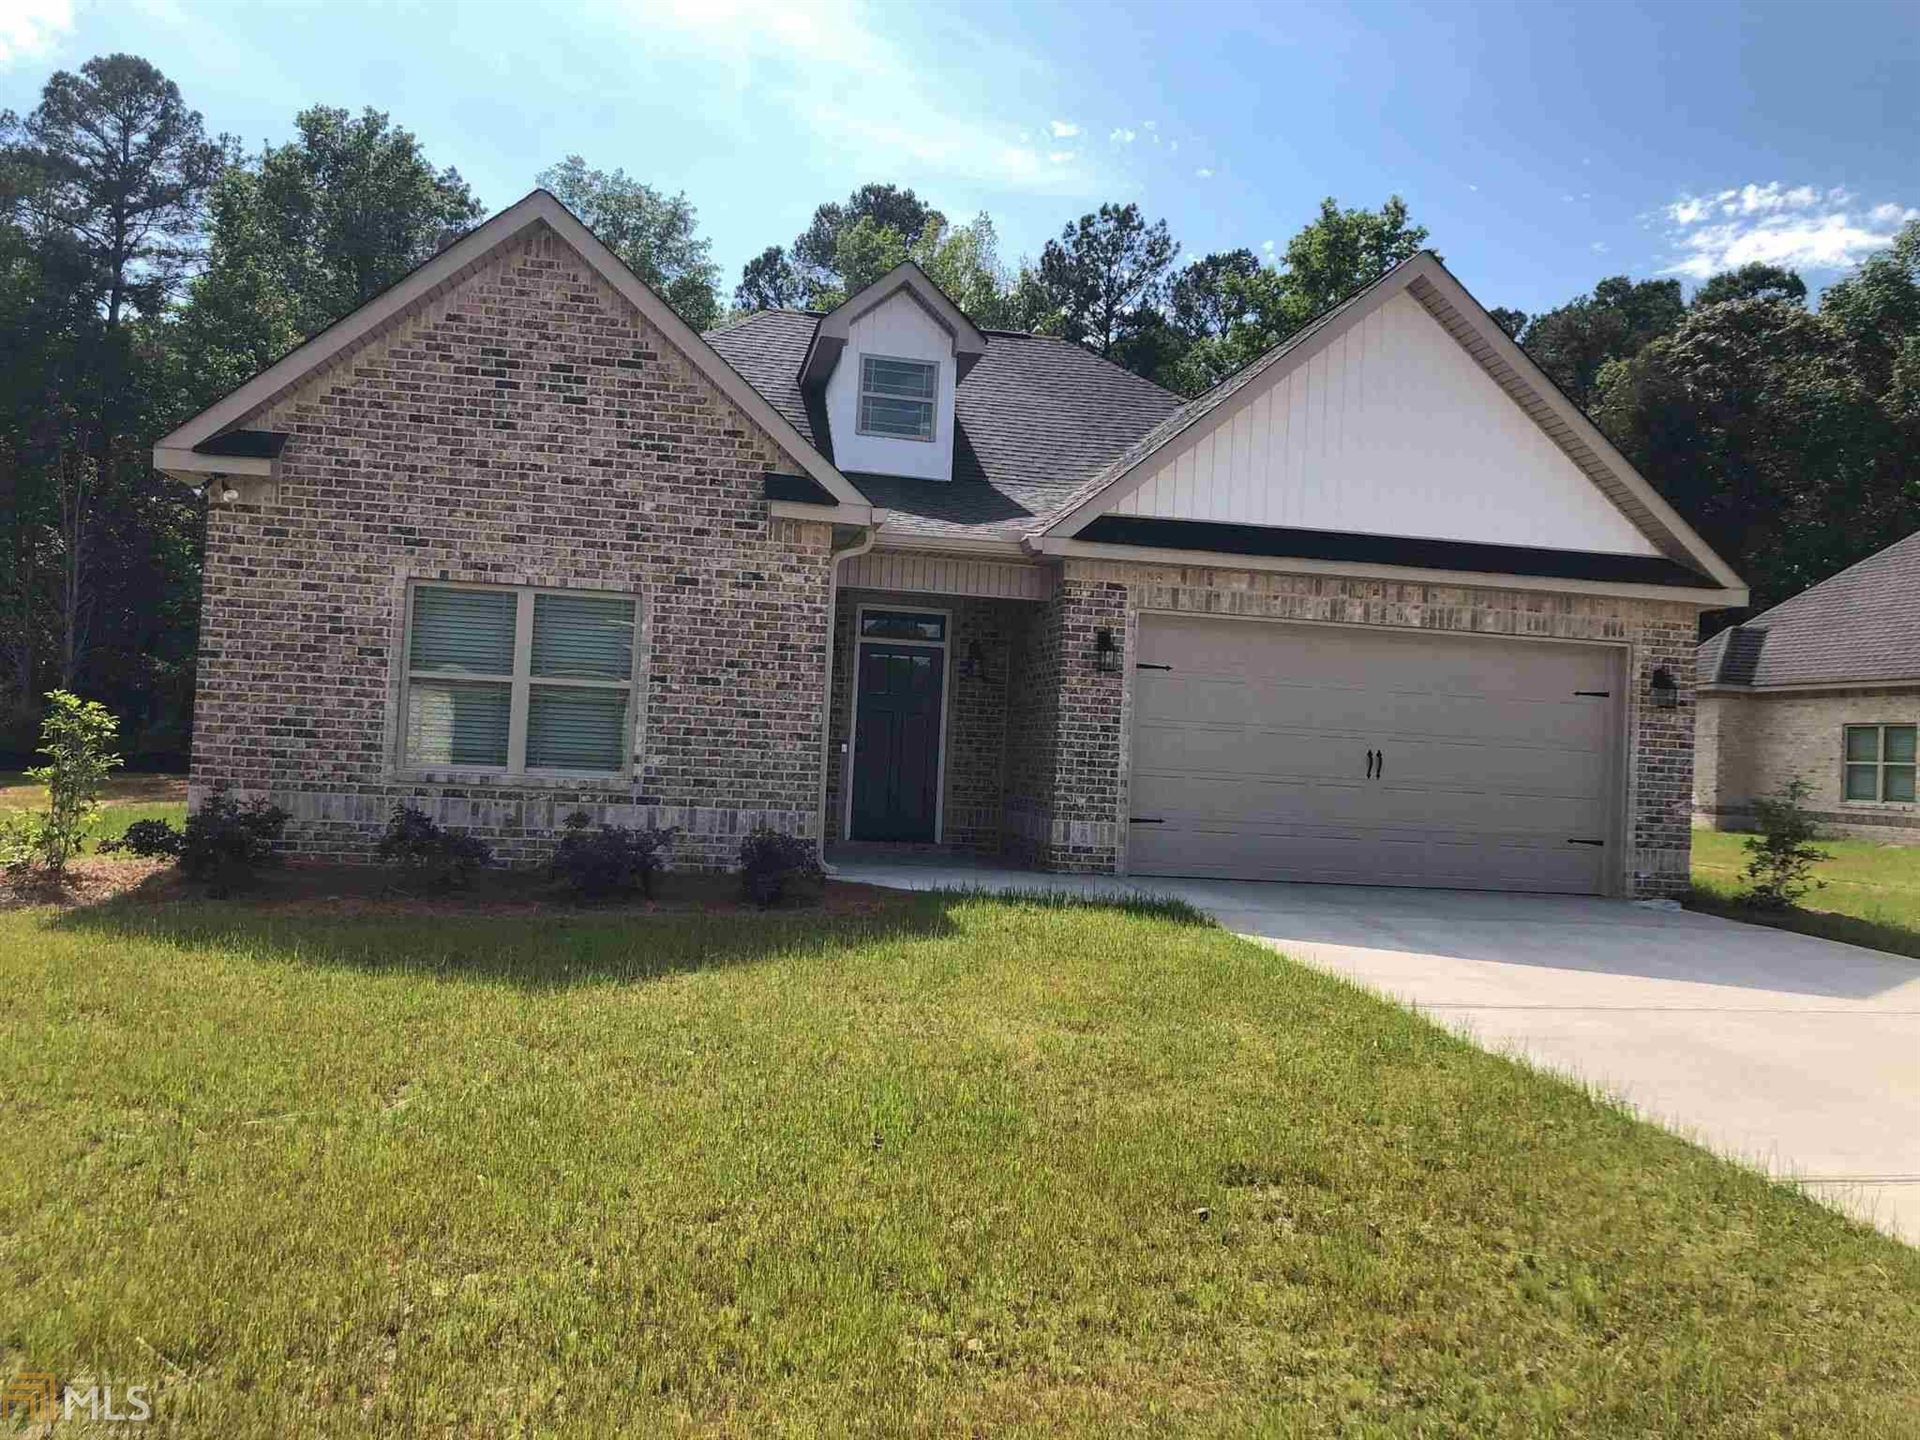 463 Barbara Ct, Forsyth, GA 31029 - #: 8886904